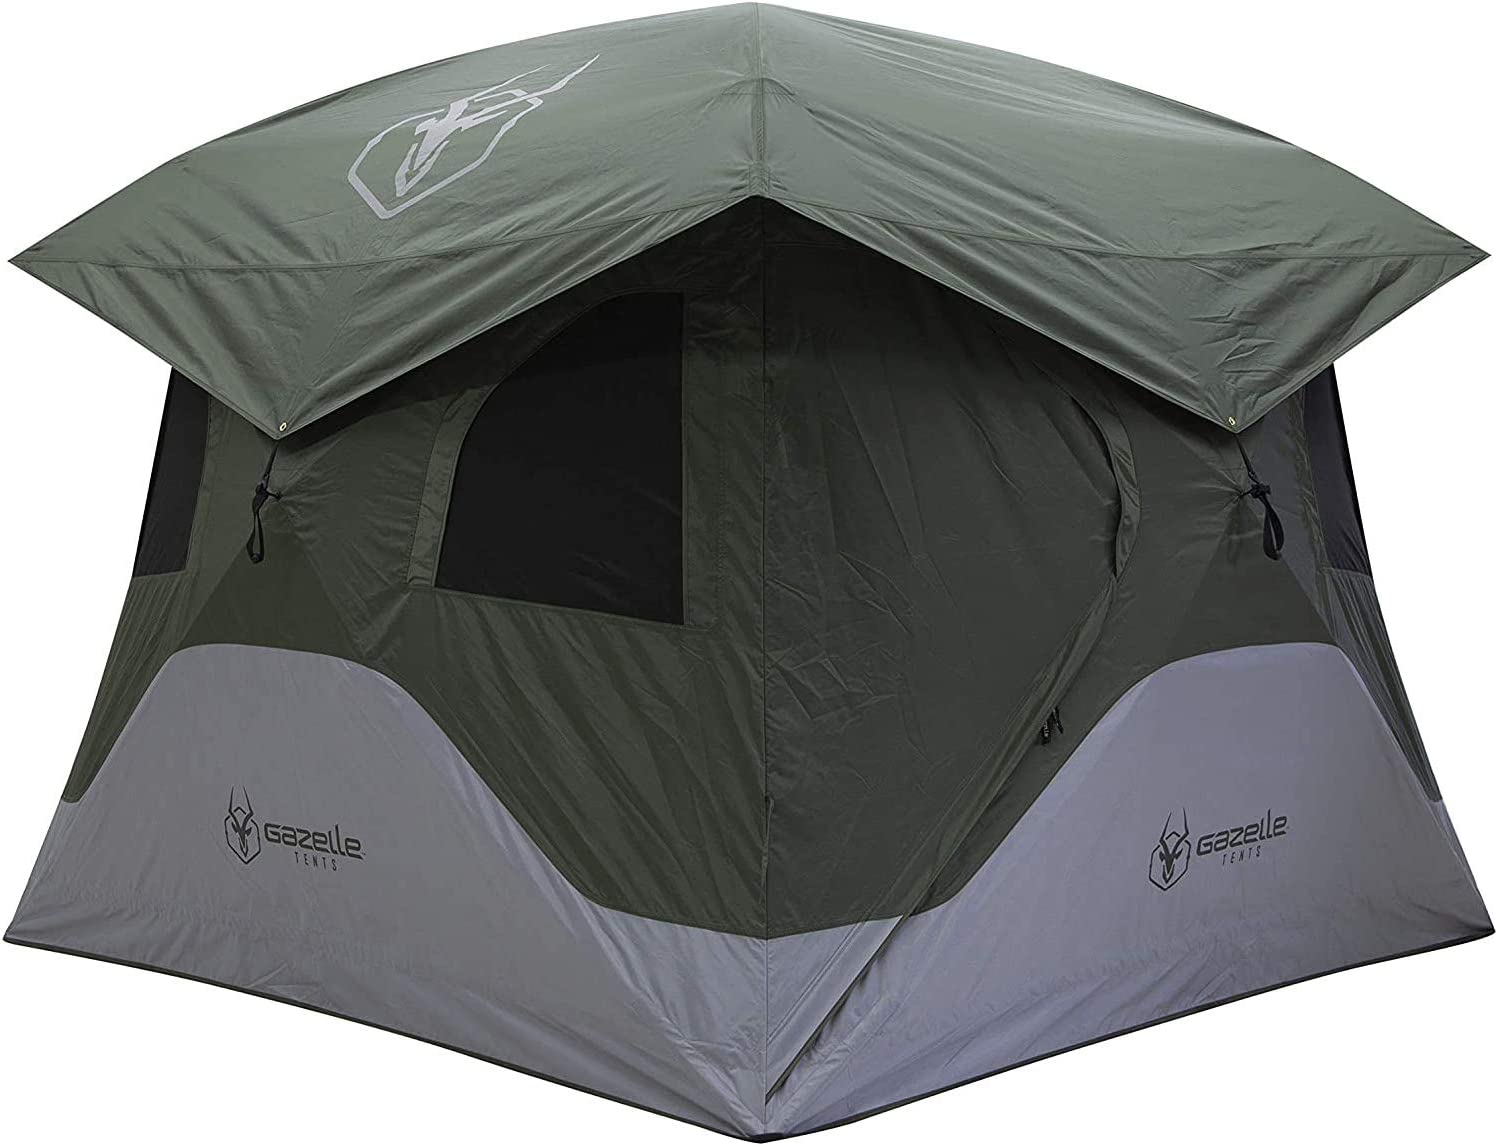 Gazelle GT400GR T4 Family 4 Person Capacity Portable Instant Pop Up Outdoor Shelter Camping Hub Tent with 2 Doors and 6 Windows, Green